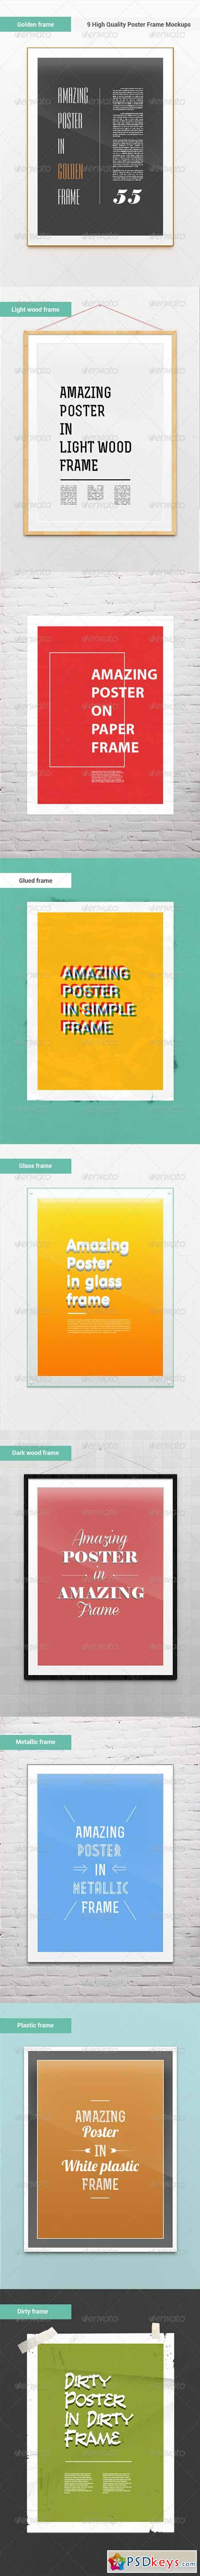 9 High Quality Picture Poster Frame Mock-Ups 5672634